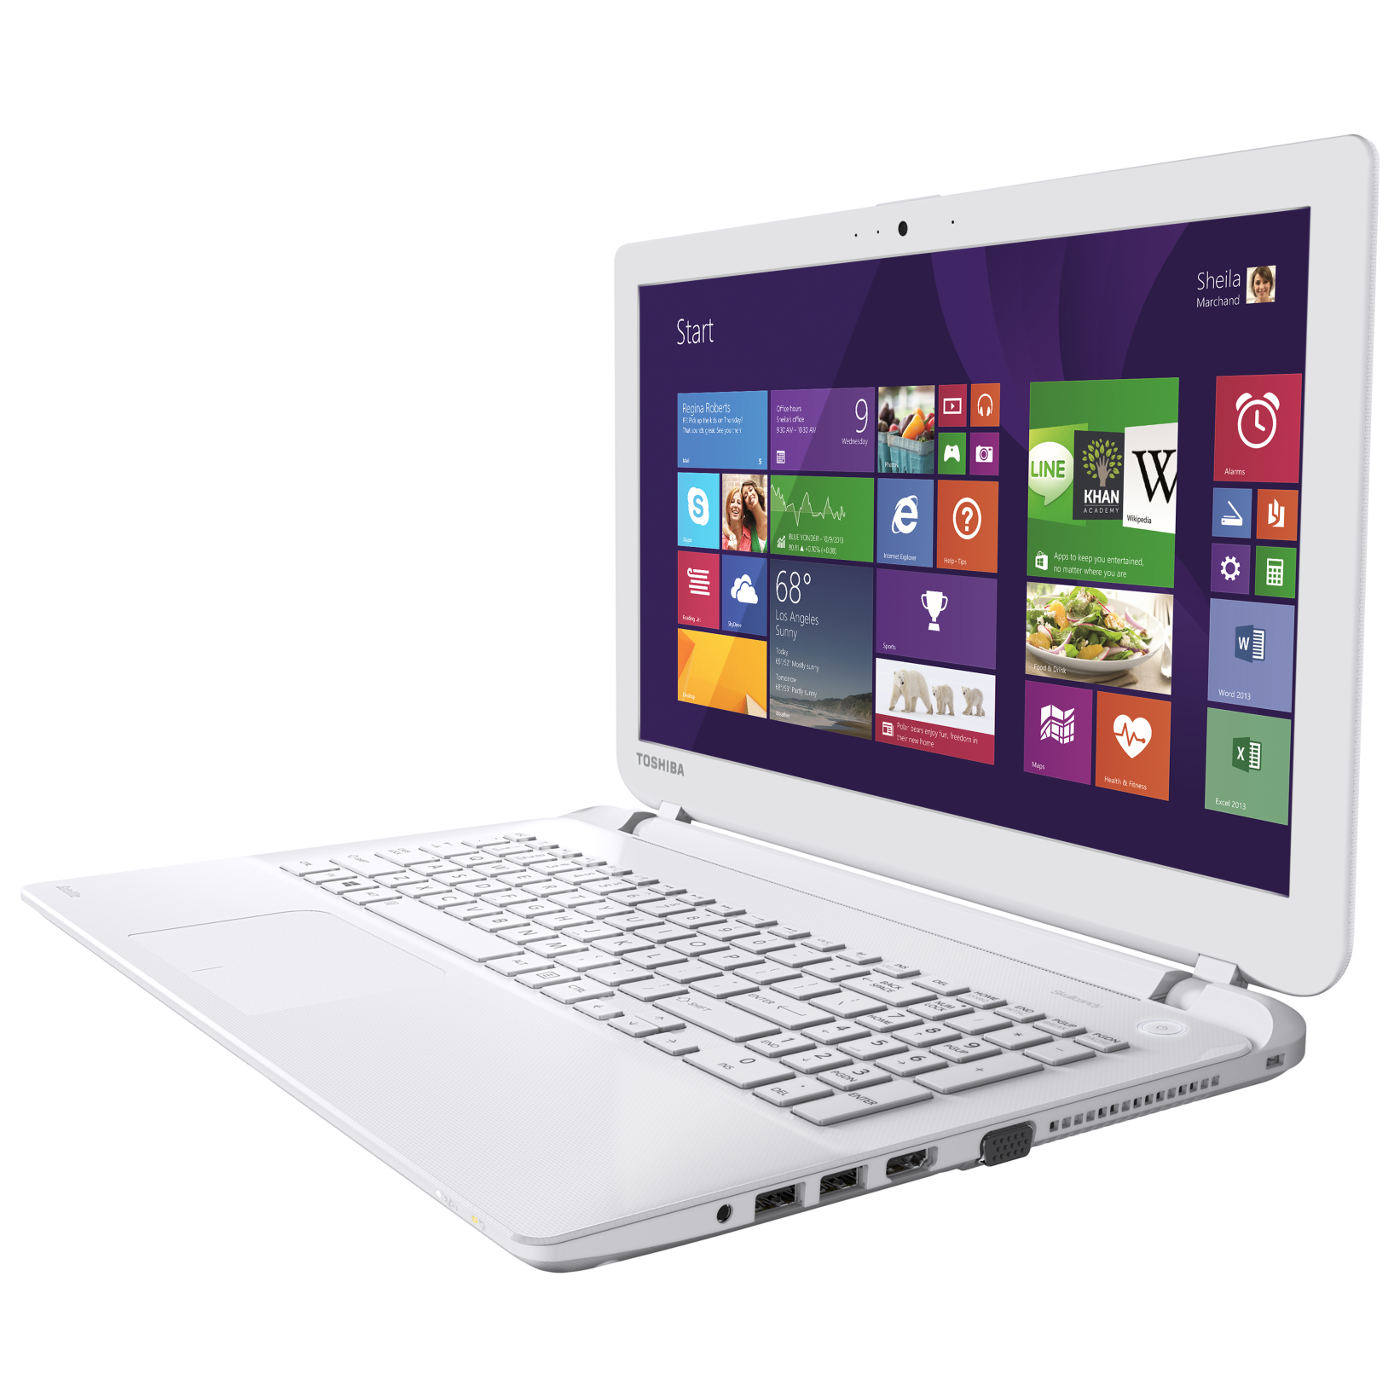 toshiba satellite l50 b 13d blanc pc portable toshiba sur. Black Bedroom Furniture Sets. Home Design Ideas